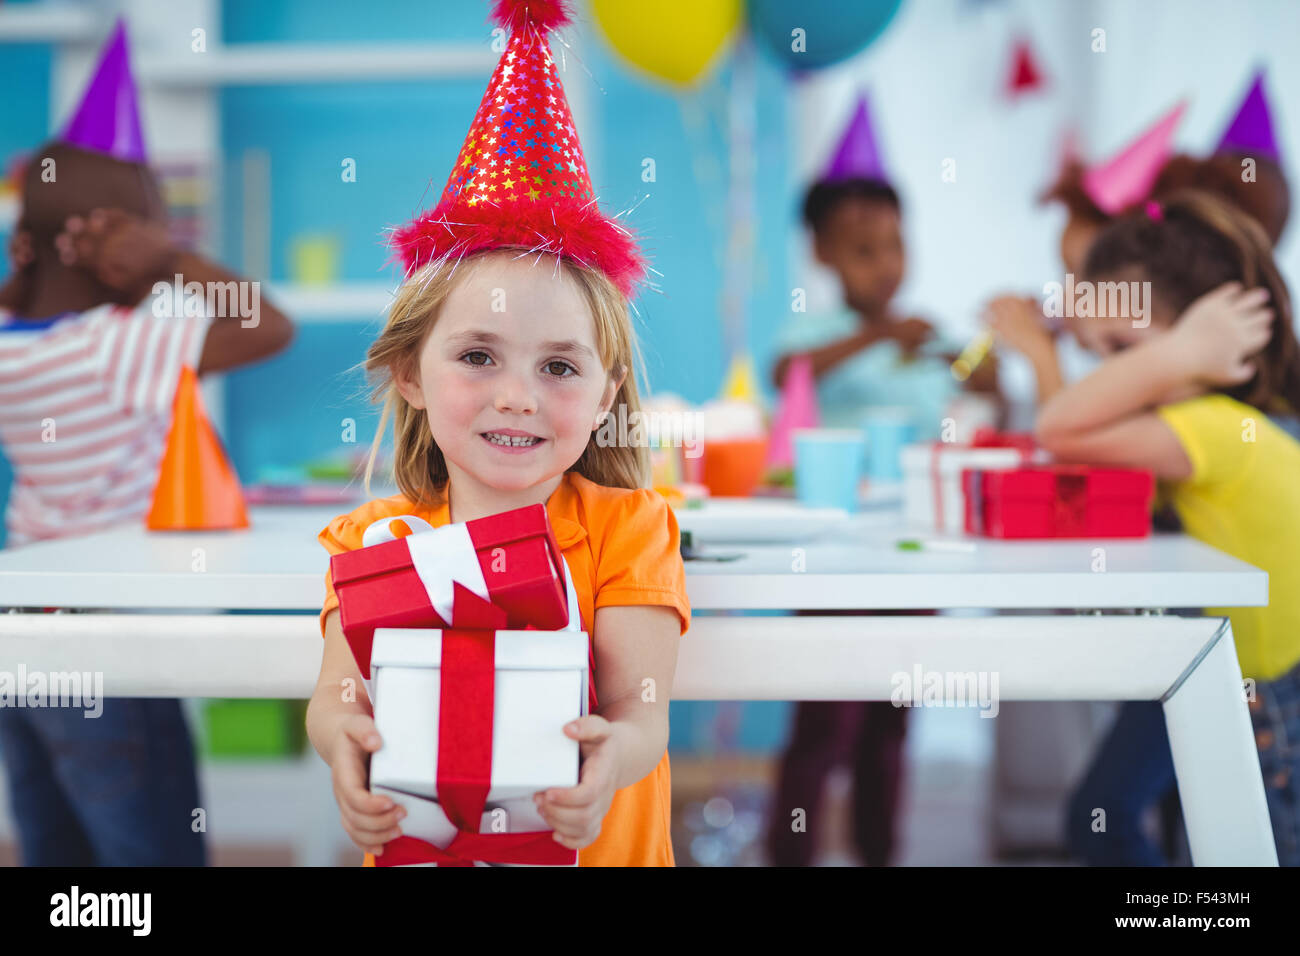 Smiling girl at birthday party - Stock Image